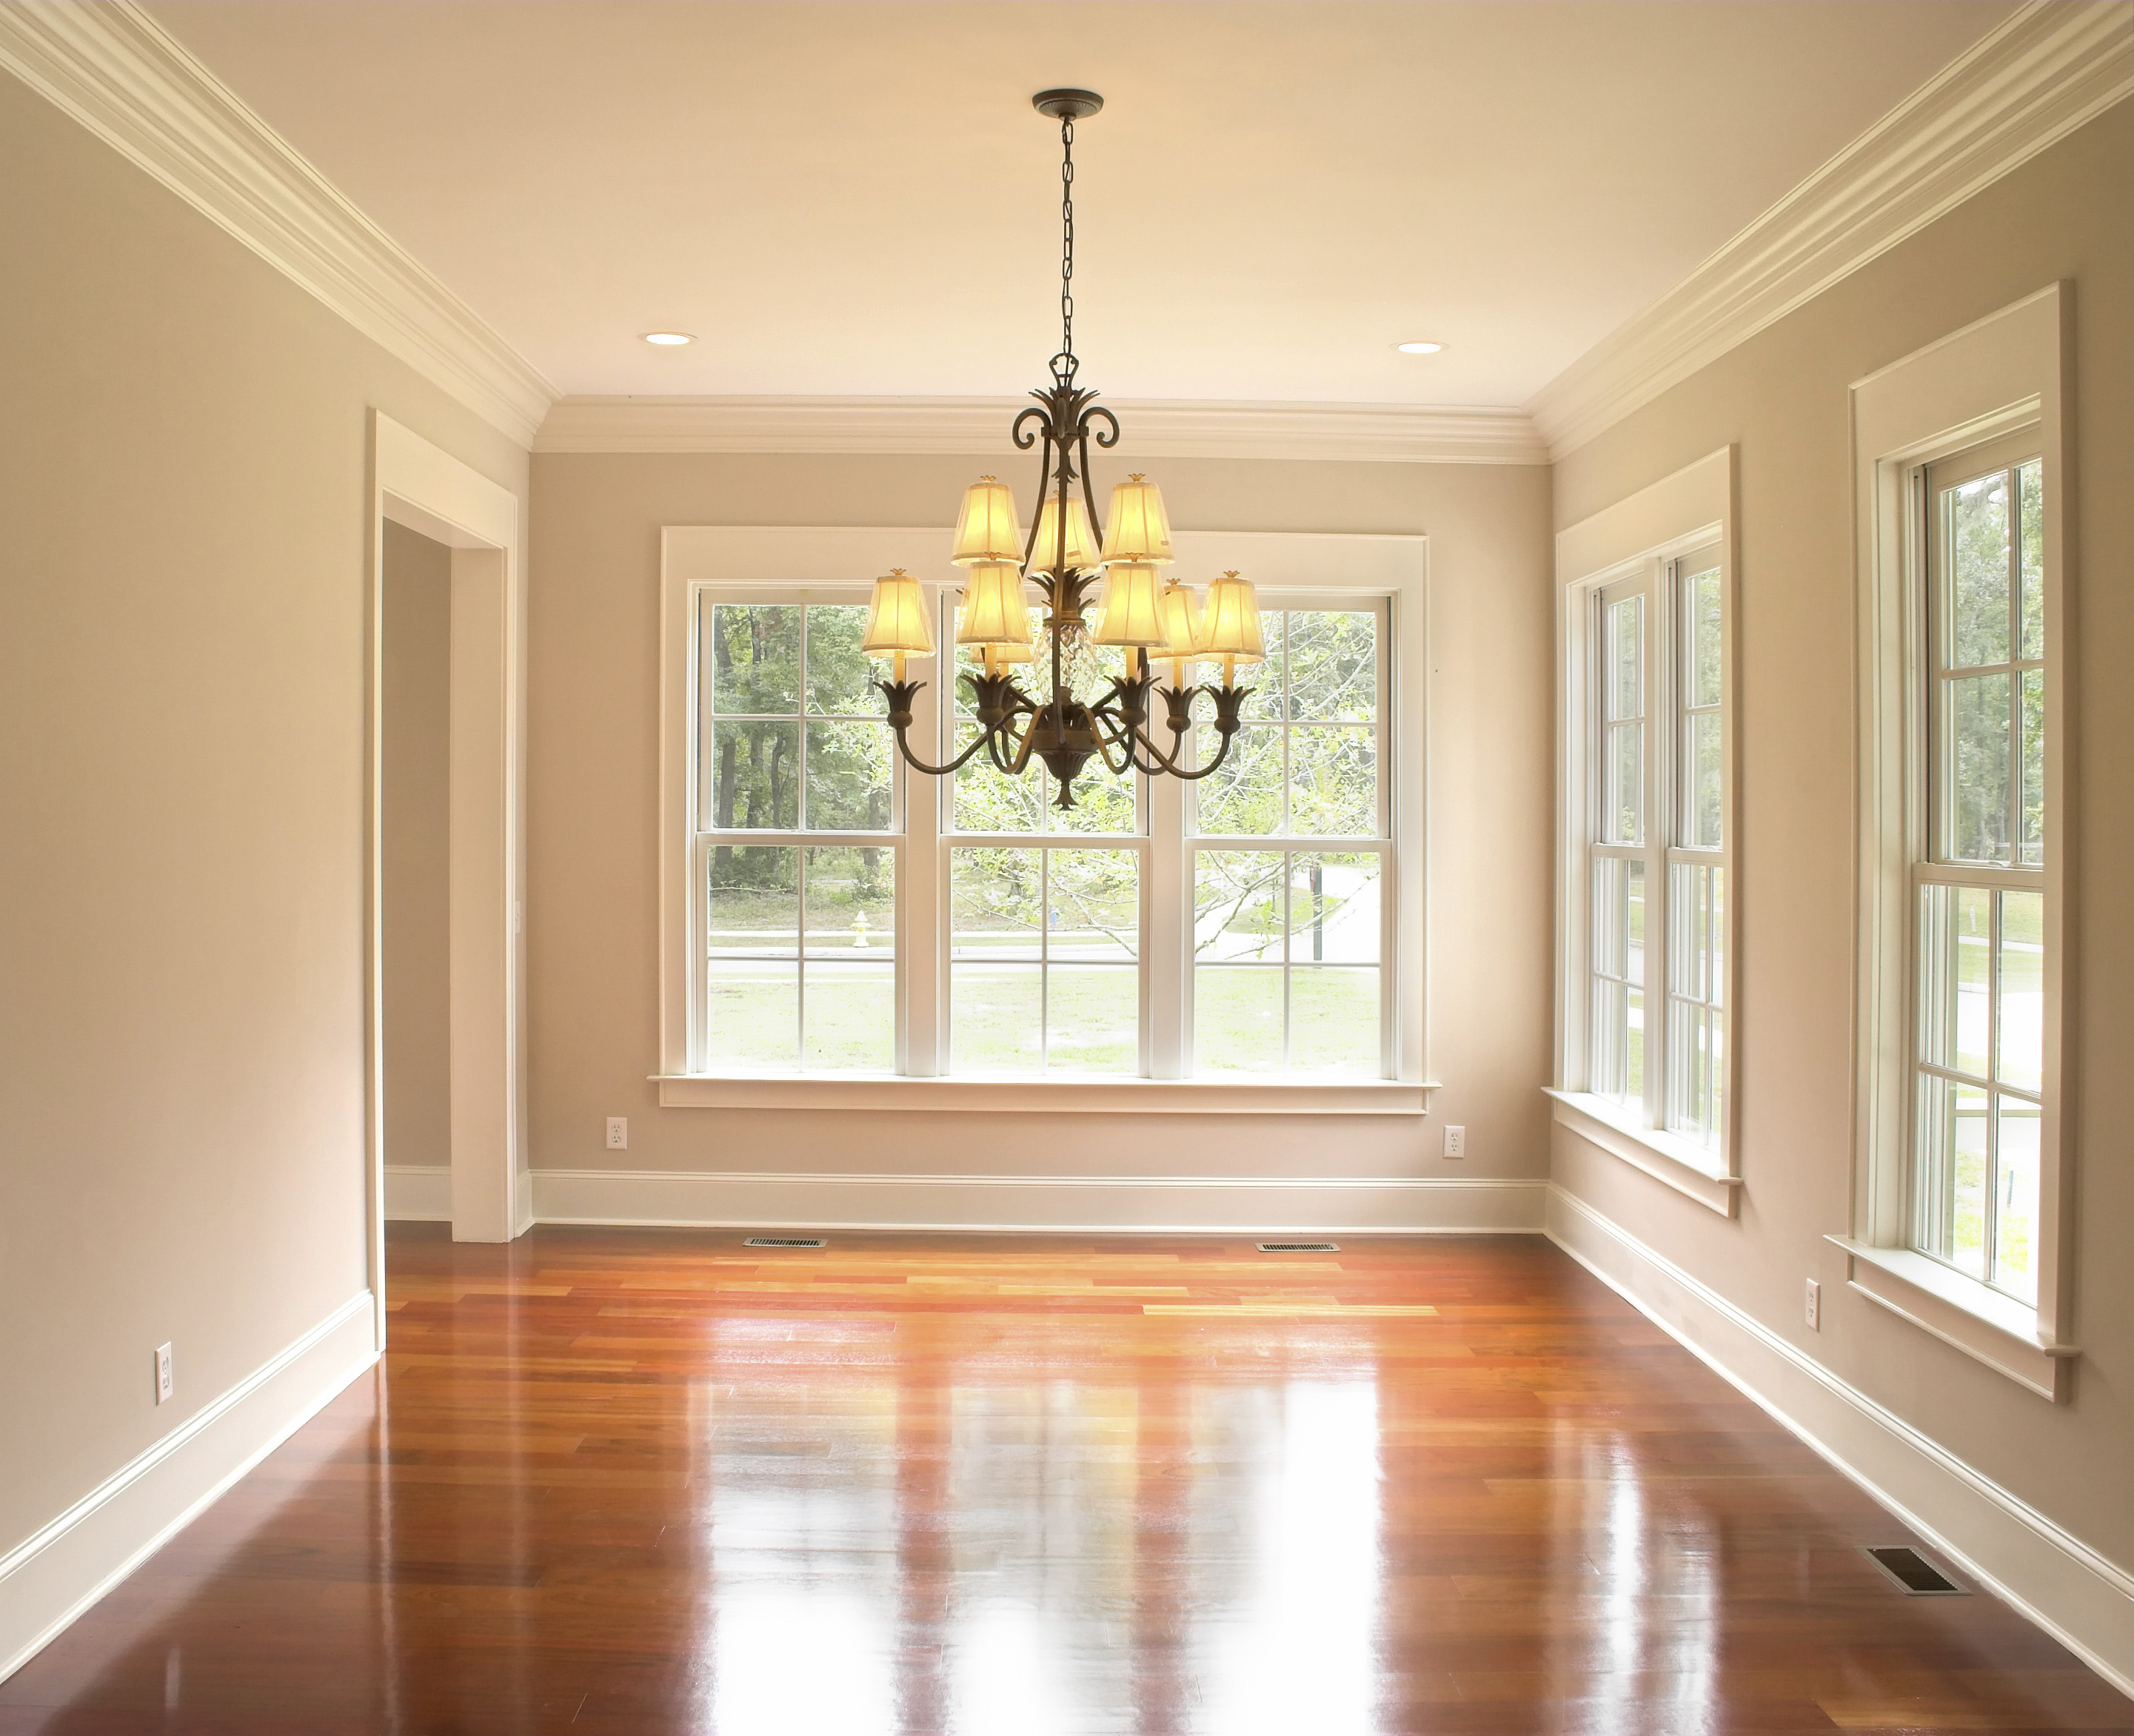 Crown Molding Ideas 3 Crown Molding Ideas That Add Value To Your Home | Blogs Now